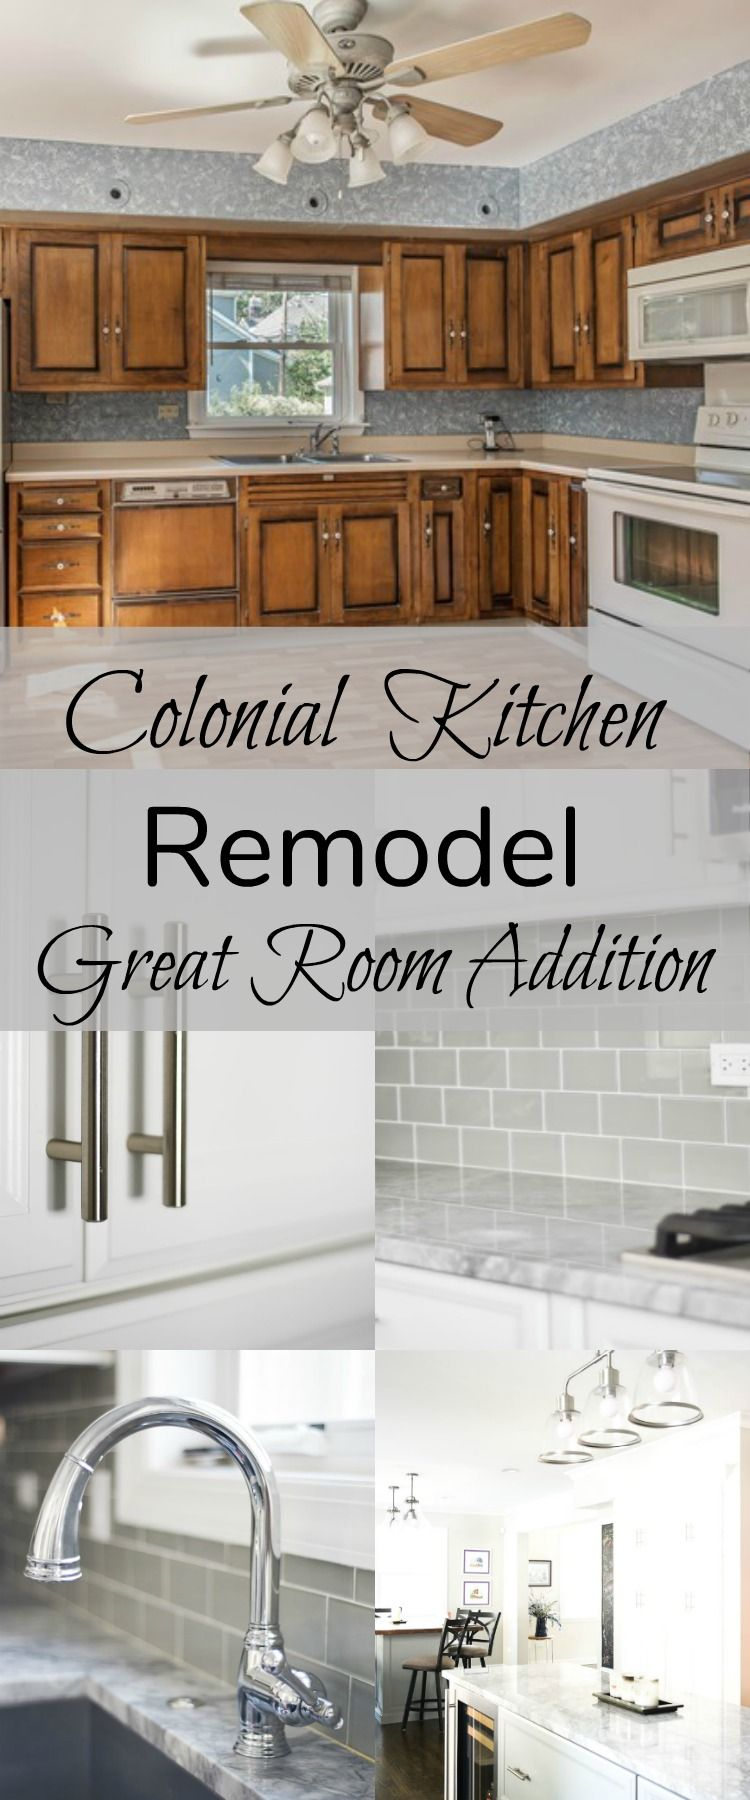 Project Colonial Kitchen And Great Room Remodel Colonial House Remodel Colonial Kitchen Remodel Full House Remodel